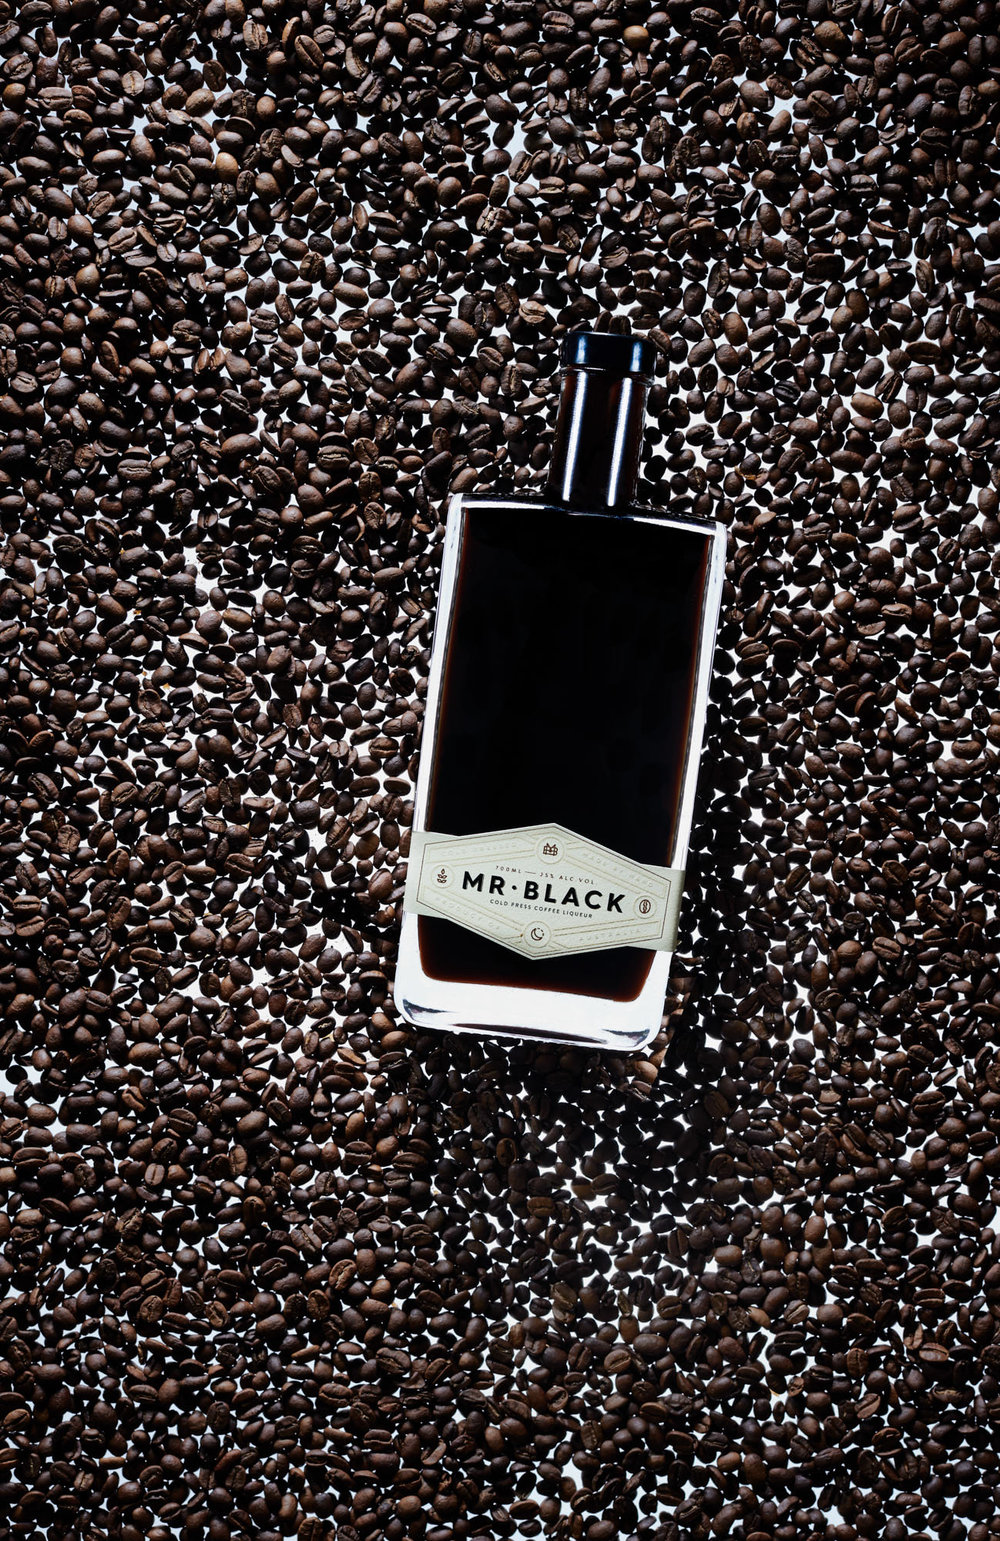 Mr Black Cold Pressed Coffee Liquor